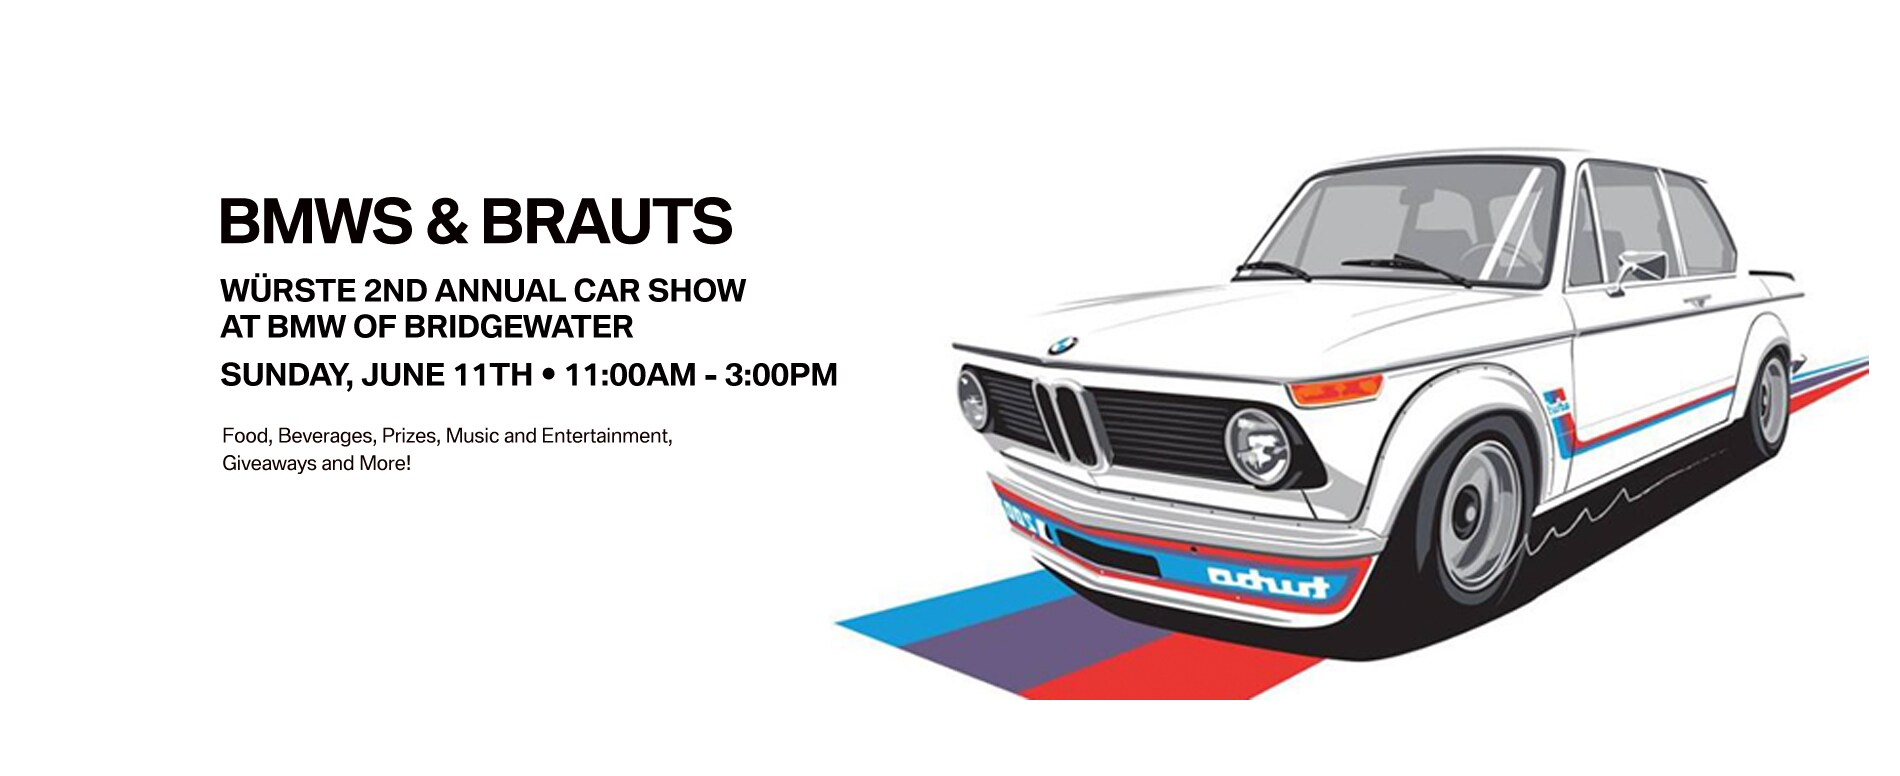 Bimmers Brauts Würste Annual Car Show On In Bridgewater NJ - Car show giveaways